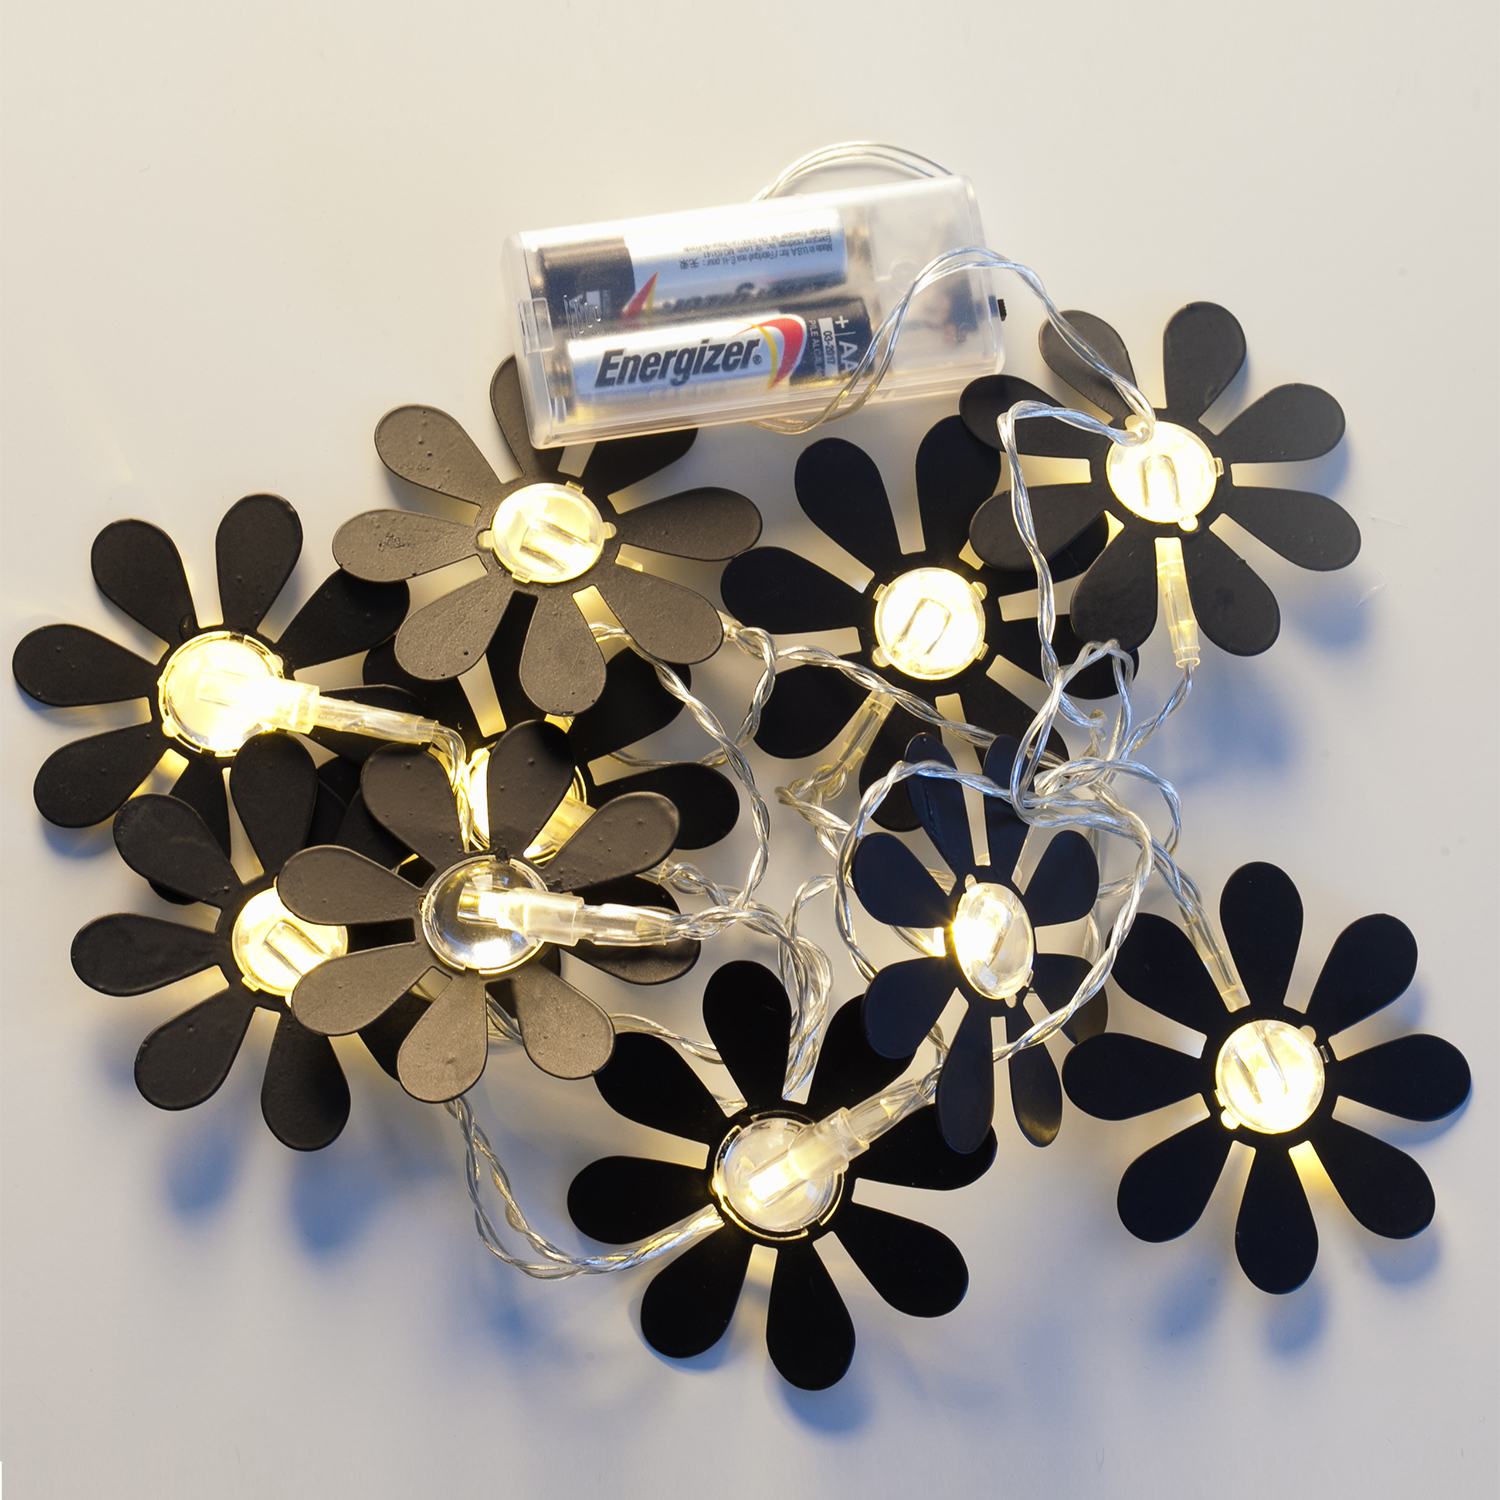 Battery Operated Decorative Wall Lights : Lights.com String Lights Decorative String Lights Black Daisy Battery Operated String ...